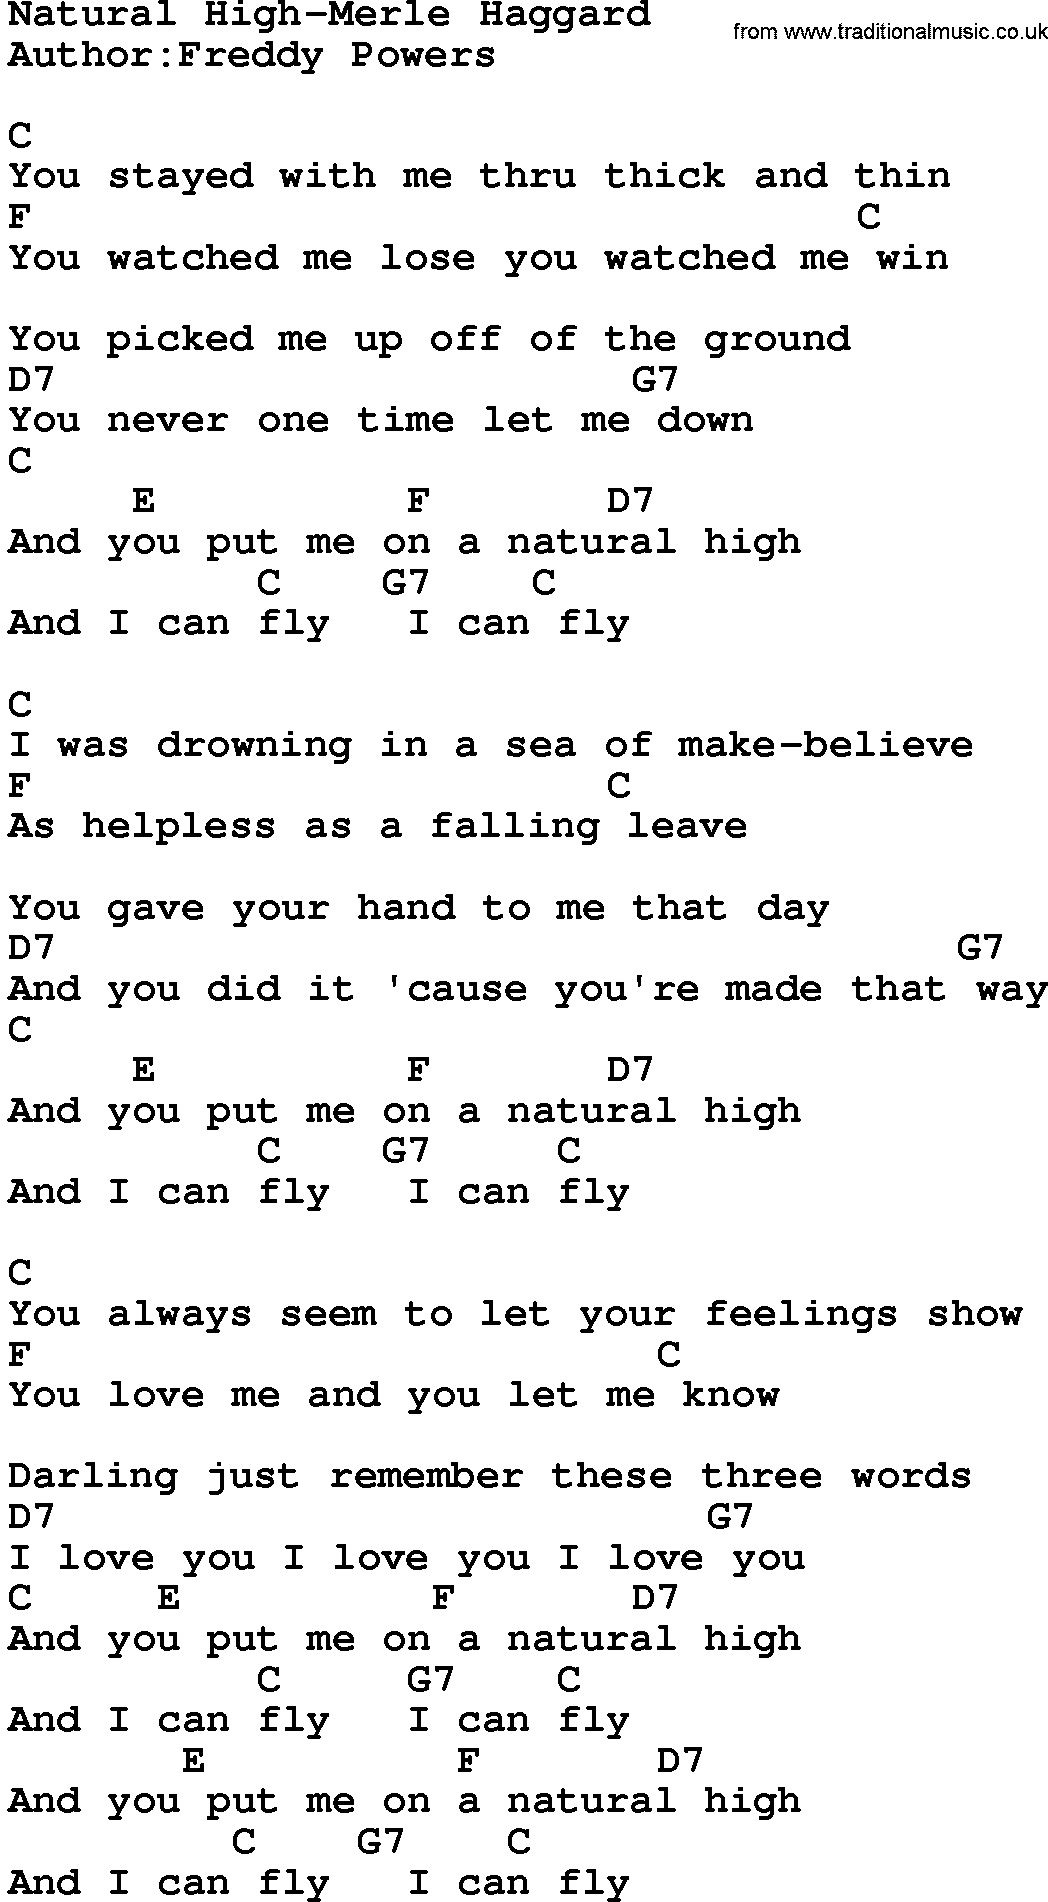 Country musicnatural high merle haggard lyrics and chords hexwebz Choice Image